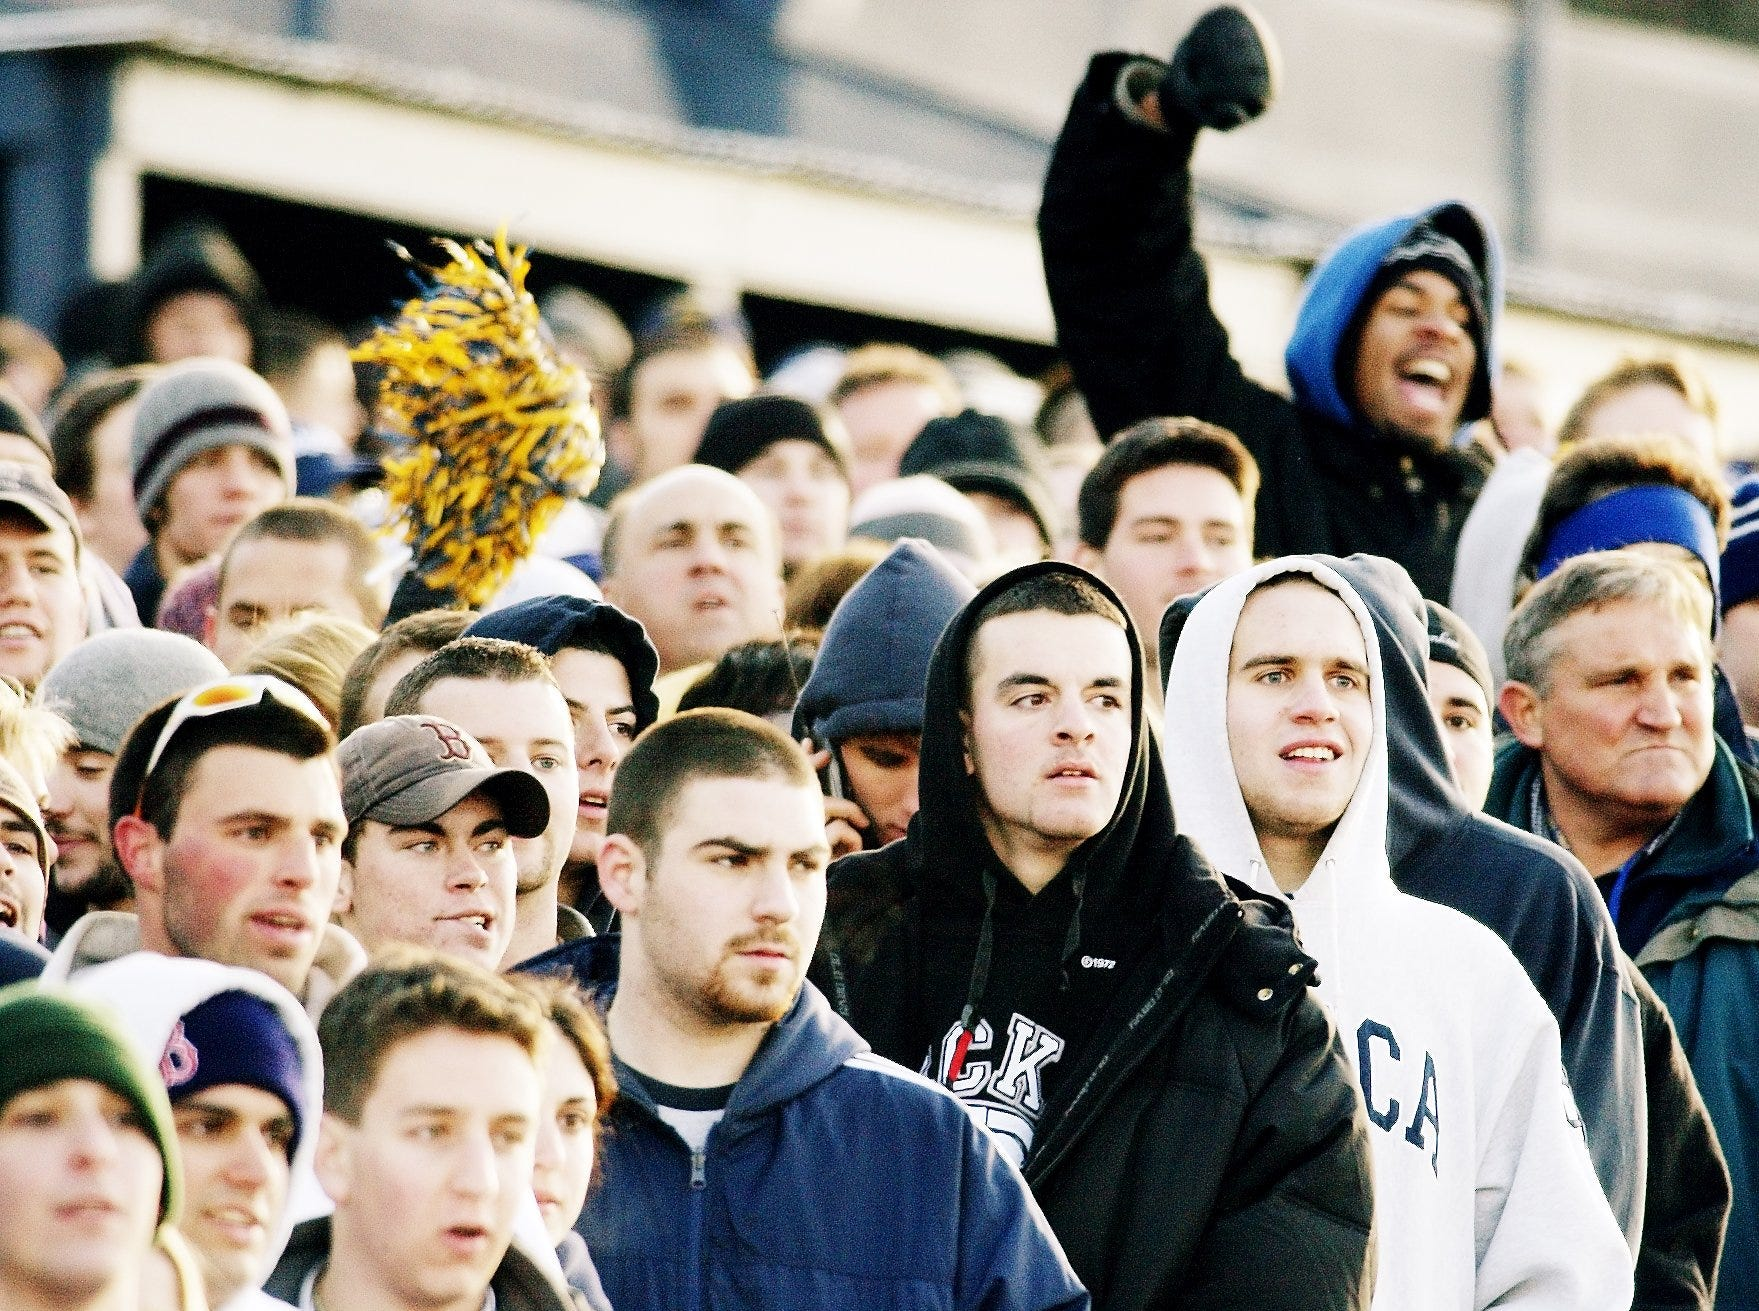 """2003: Fans react during the 45th annual """"Cortaca"""" Jug football game held Saturday at Ithaca College. Ryan DeCamp made a 26-yard field goal as time expired to give Cortland State a 16-15 victory over Ithaca, the Red Dragons' second consecutive win over IC. An overflow crowd of 11,743 watched the game."""